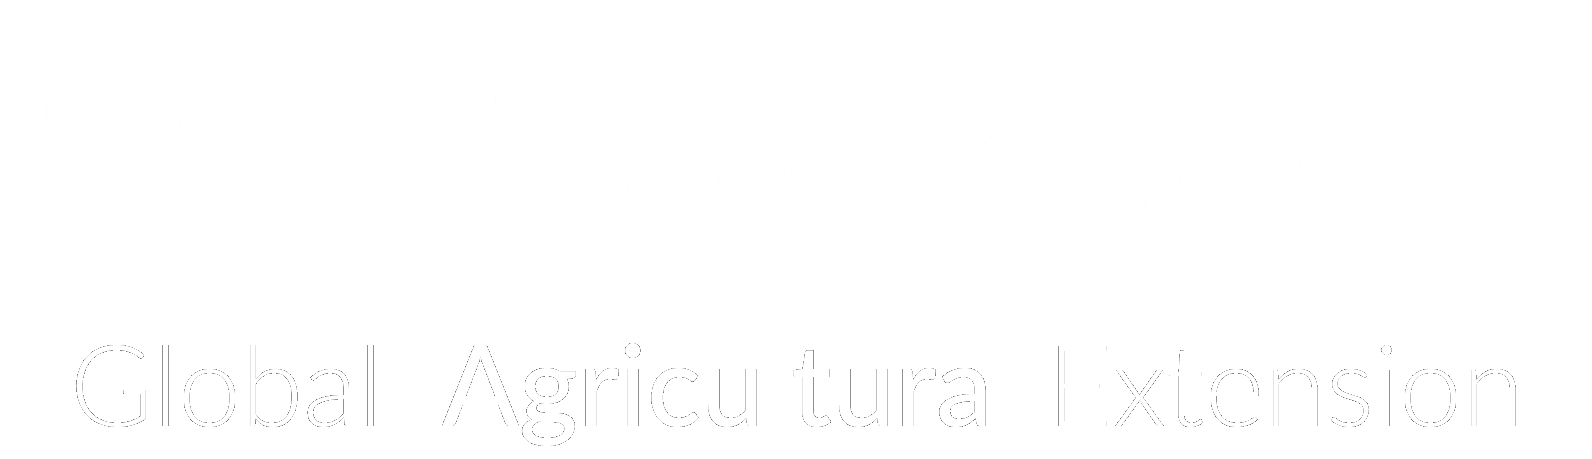 The Big Book Project